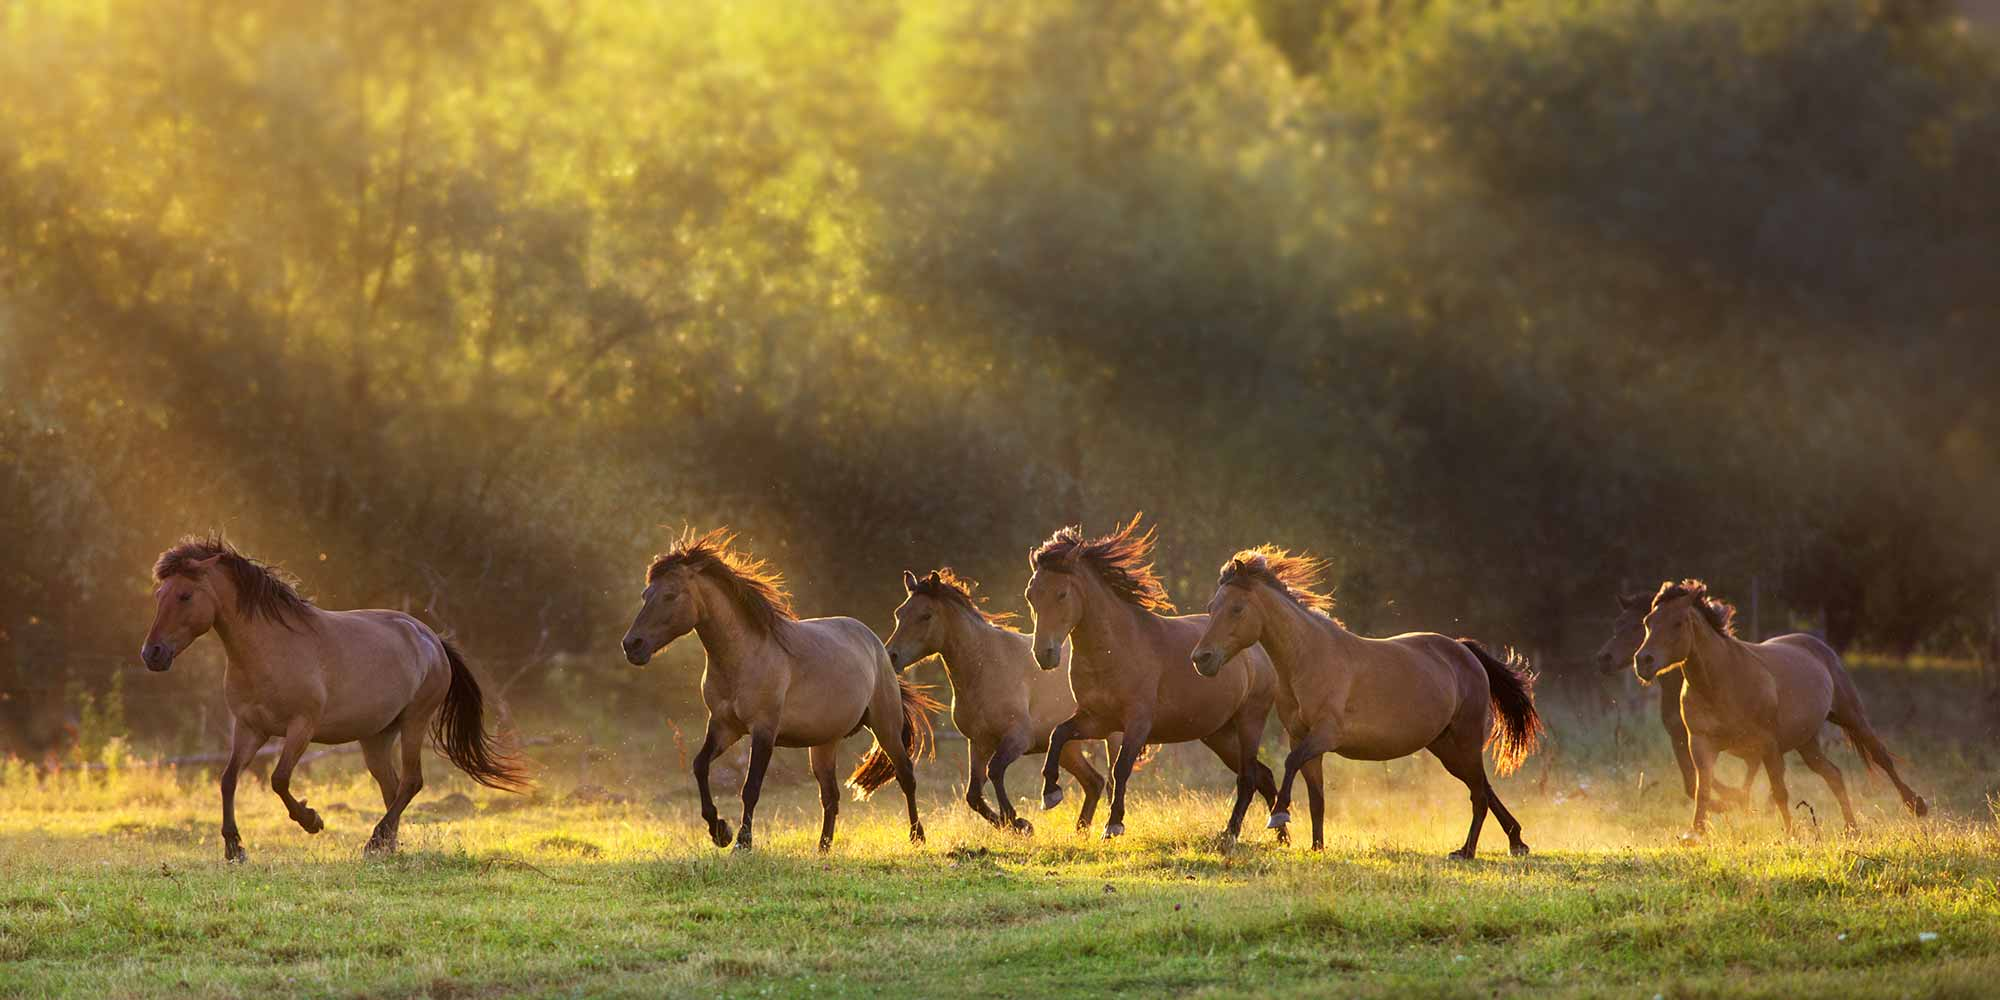 EQ Graphics | Golden Hour Horse Photography of Galloping Wild Horses